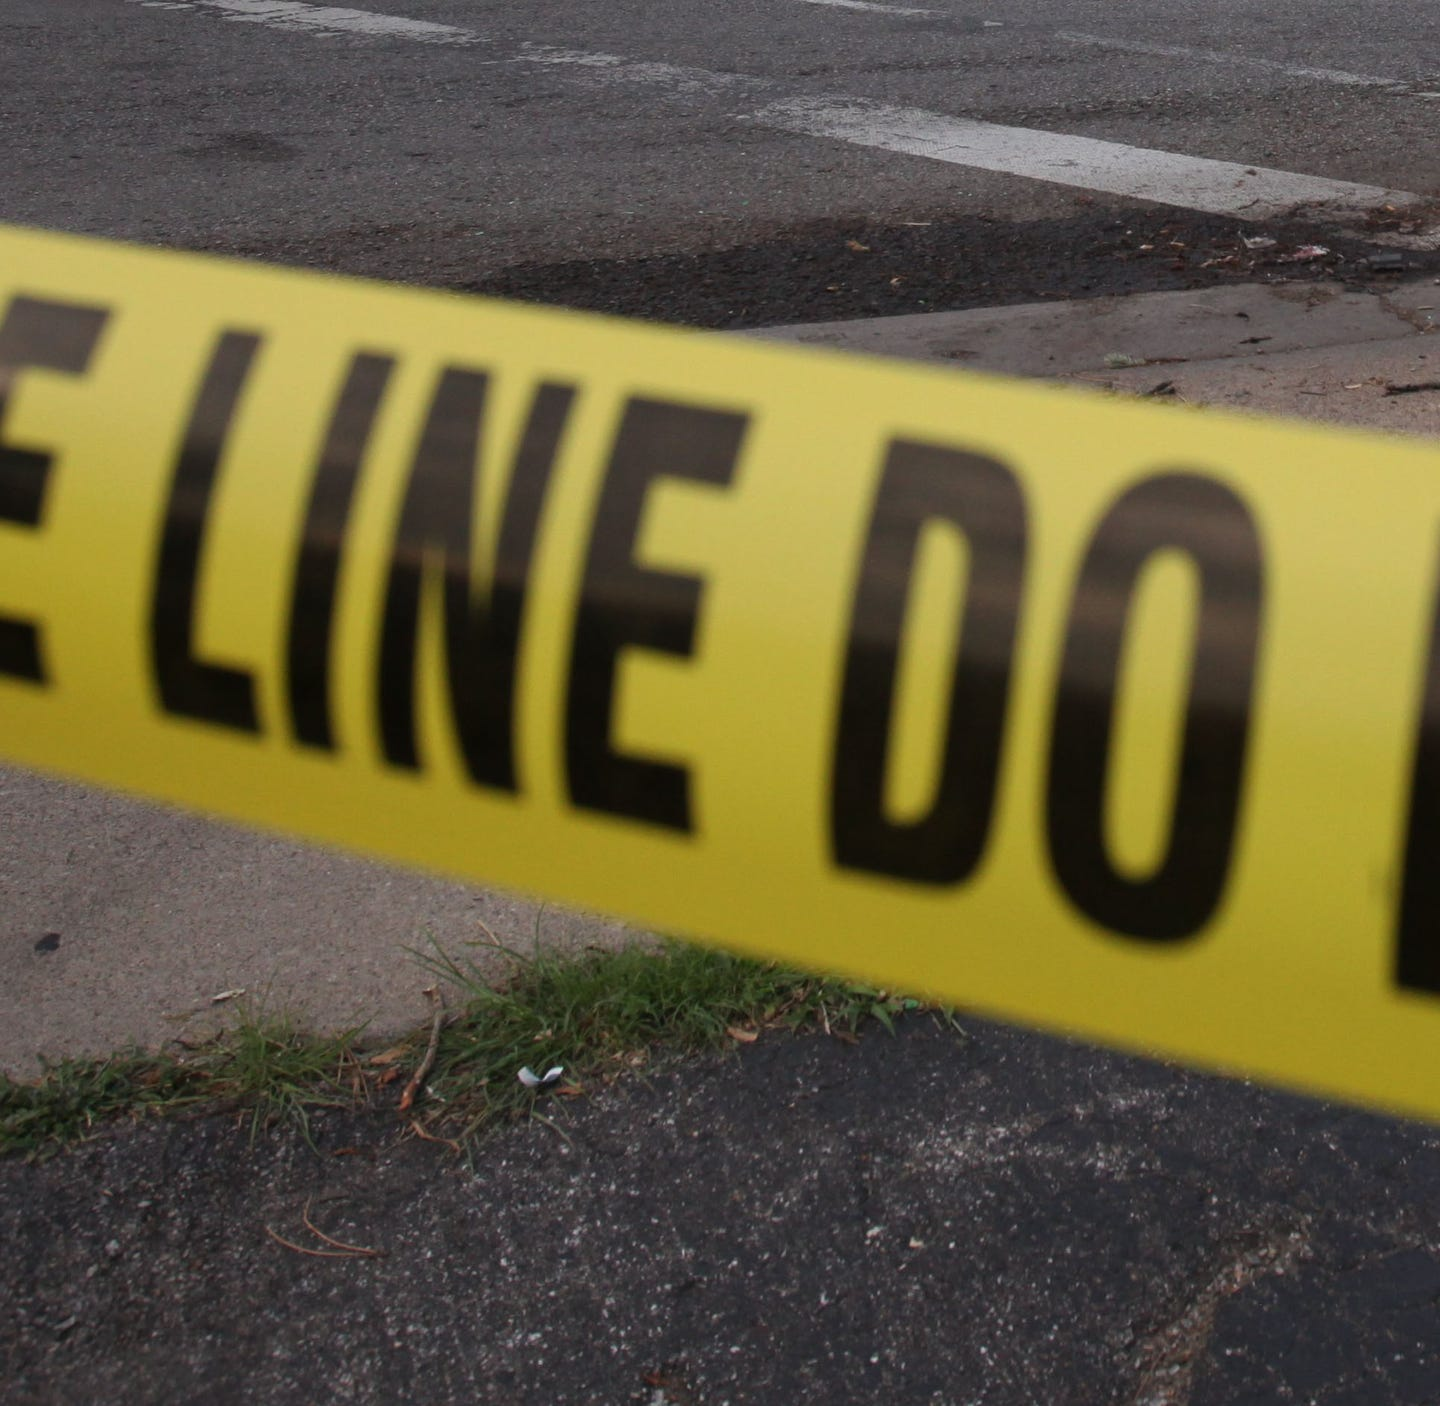 Detroit grandpa, 70, fatally shot in home during struggle with teen